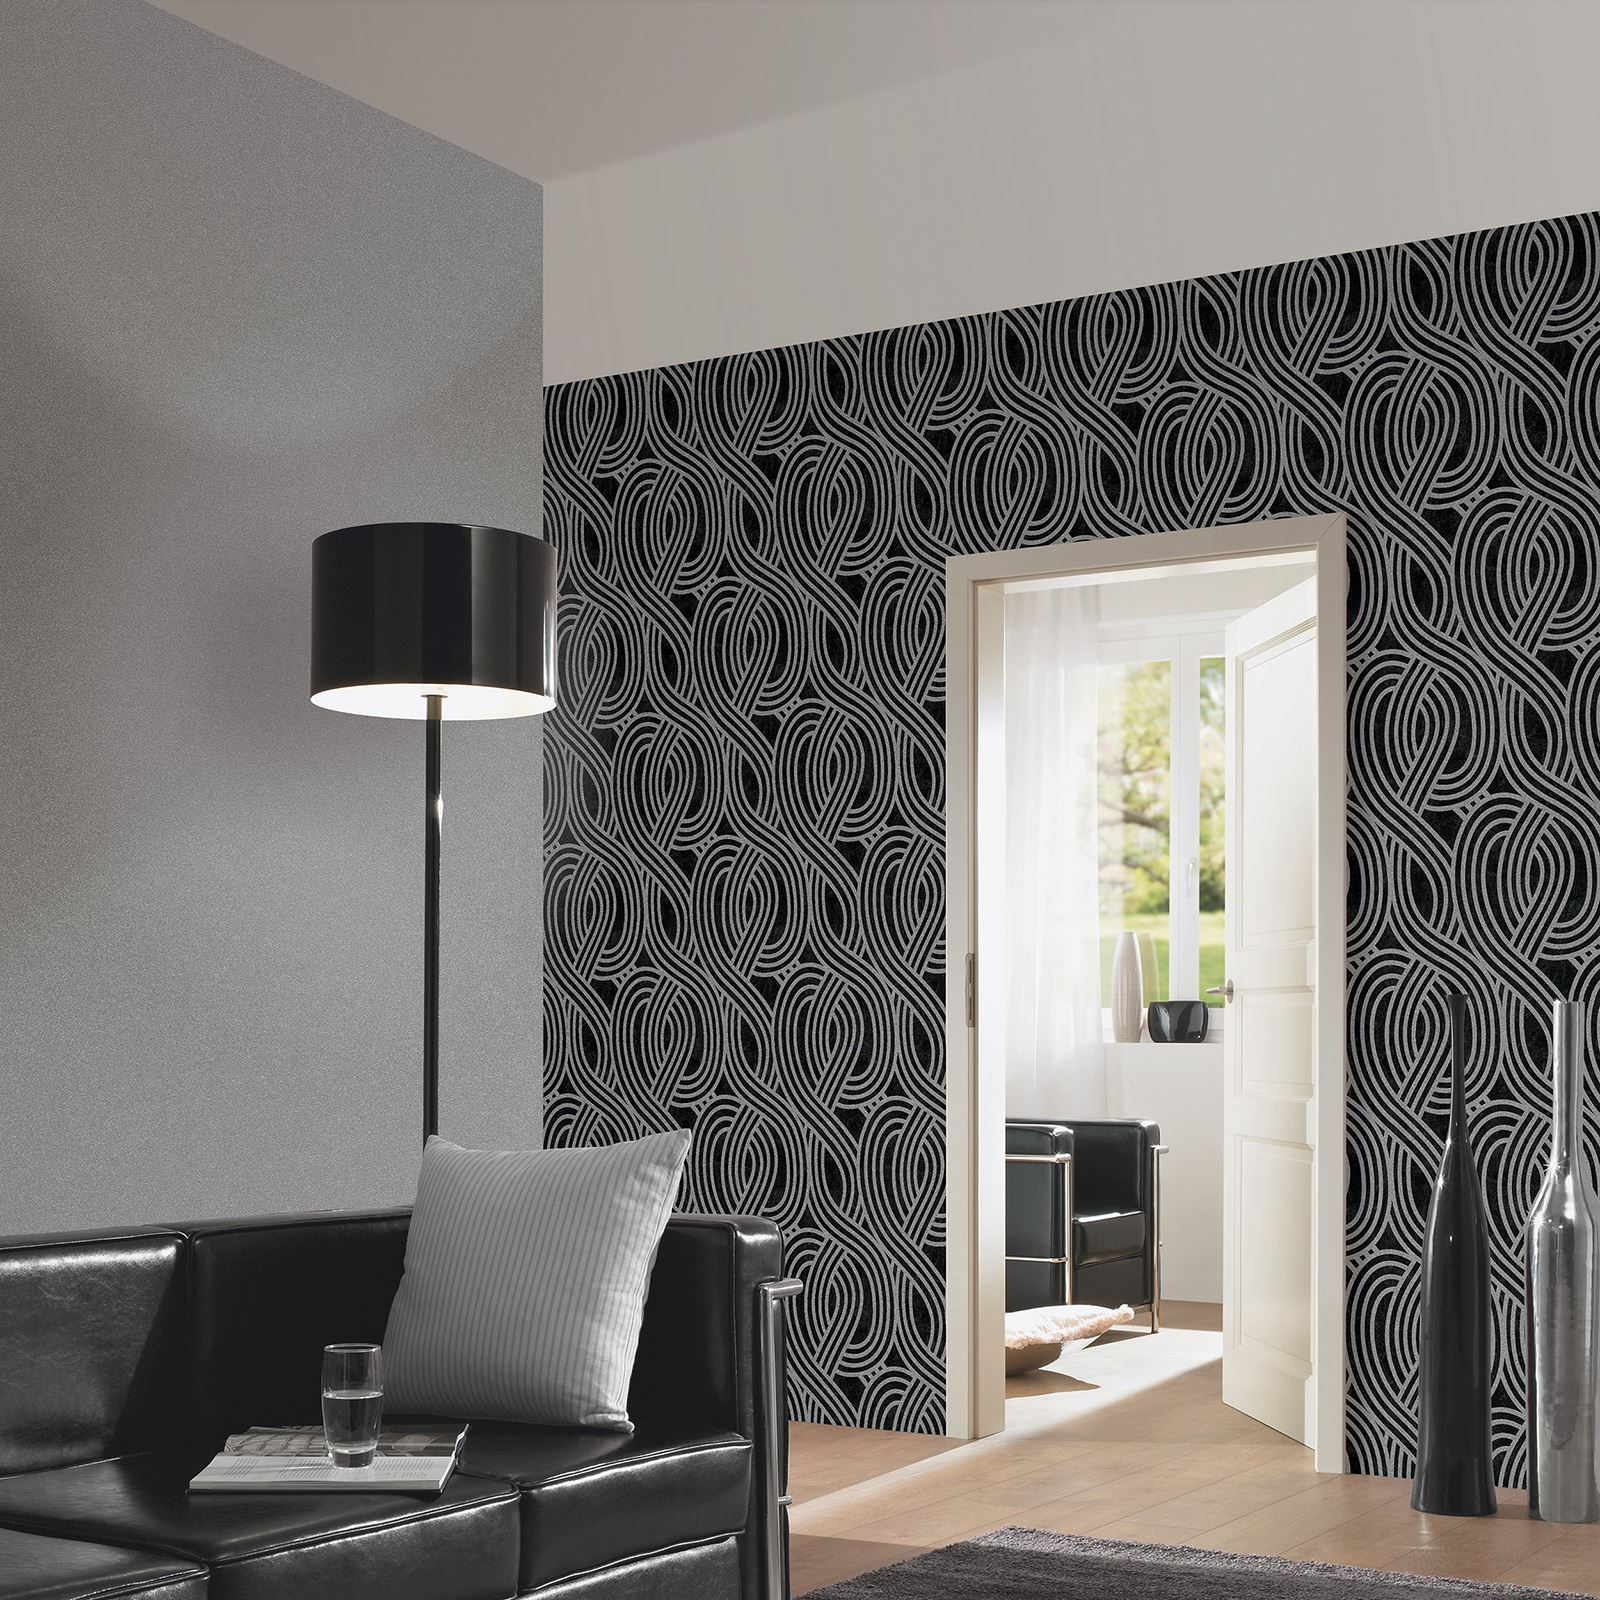 CARAT GLITTER WALLPAPER DARK SILVER 13348 60 BEDROOM LOUNGE ROOM FEATURE  WALL